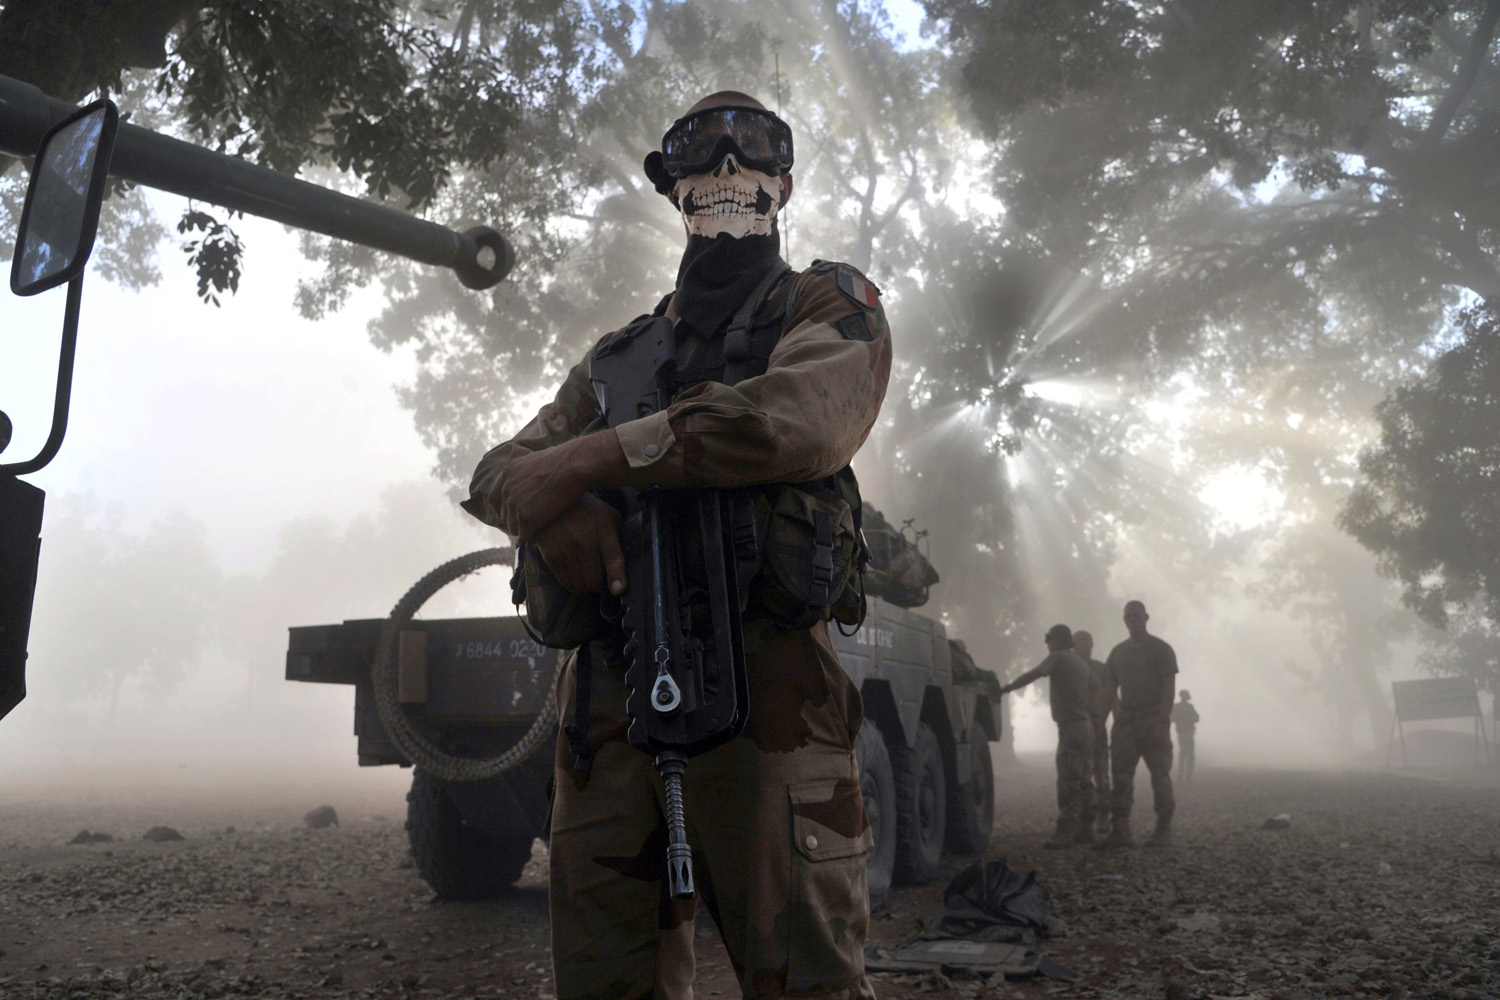 Jan. 20, 2013. A French soldier wearing a skeleton mask stands next to a tank on a street in Niono, Mali.